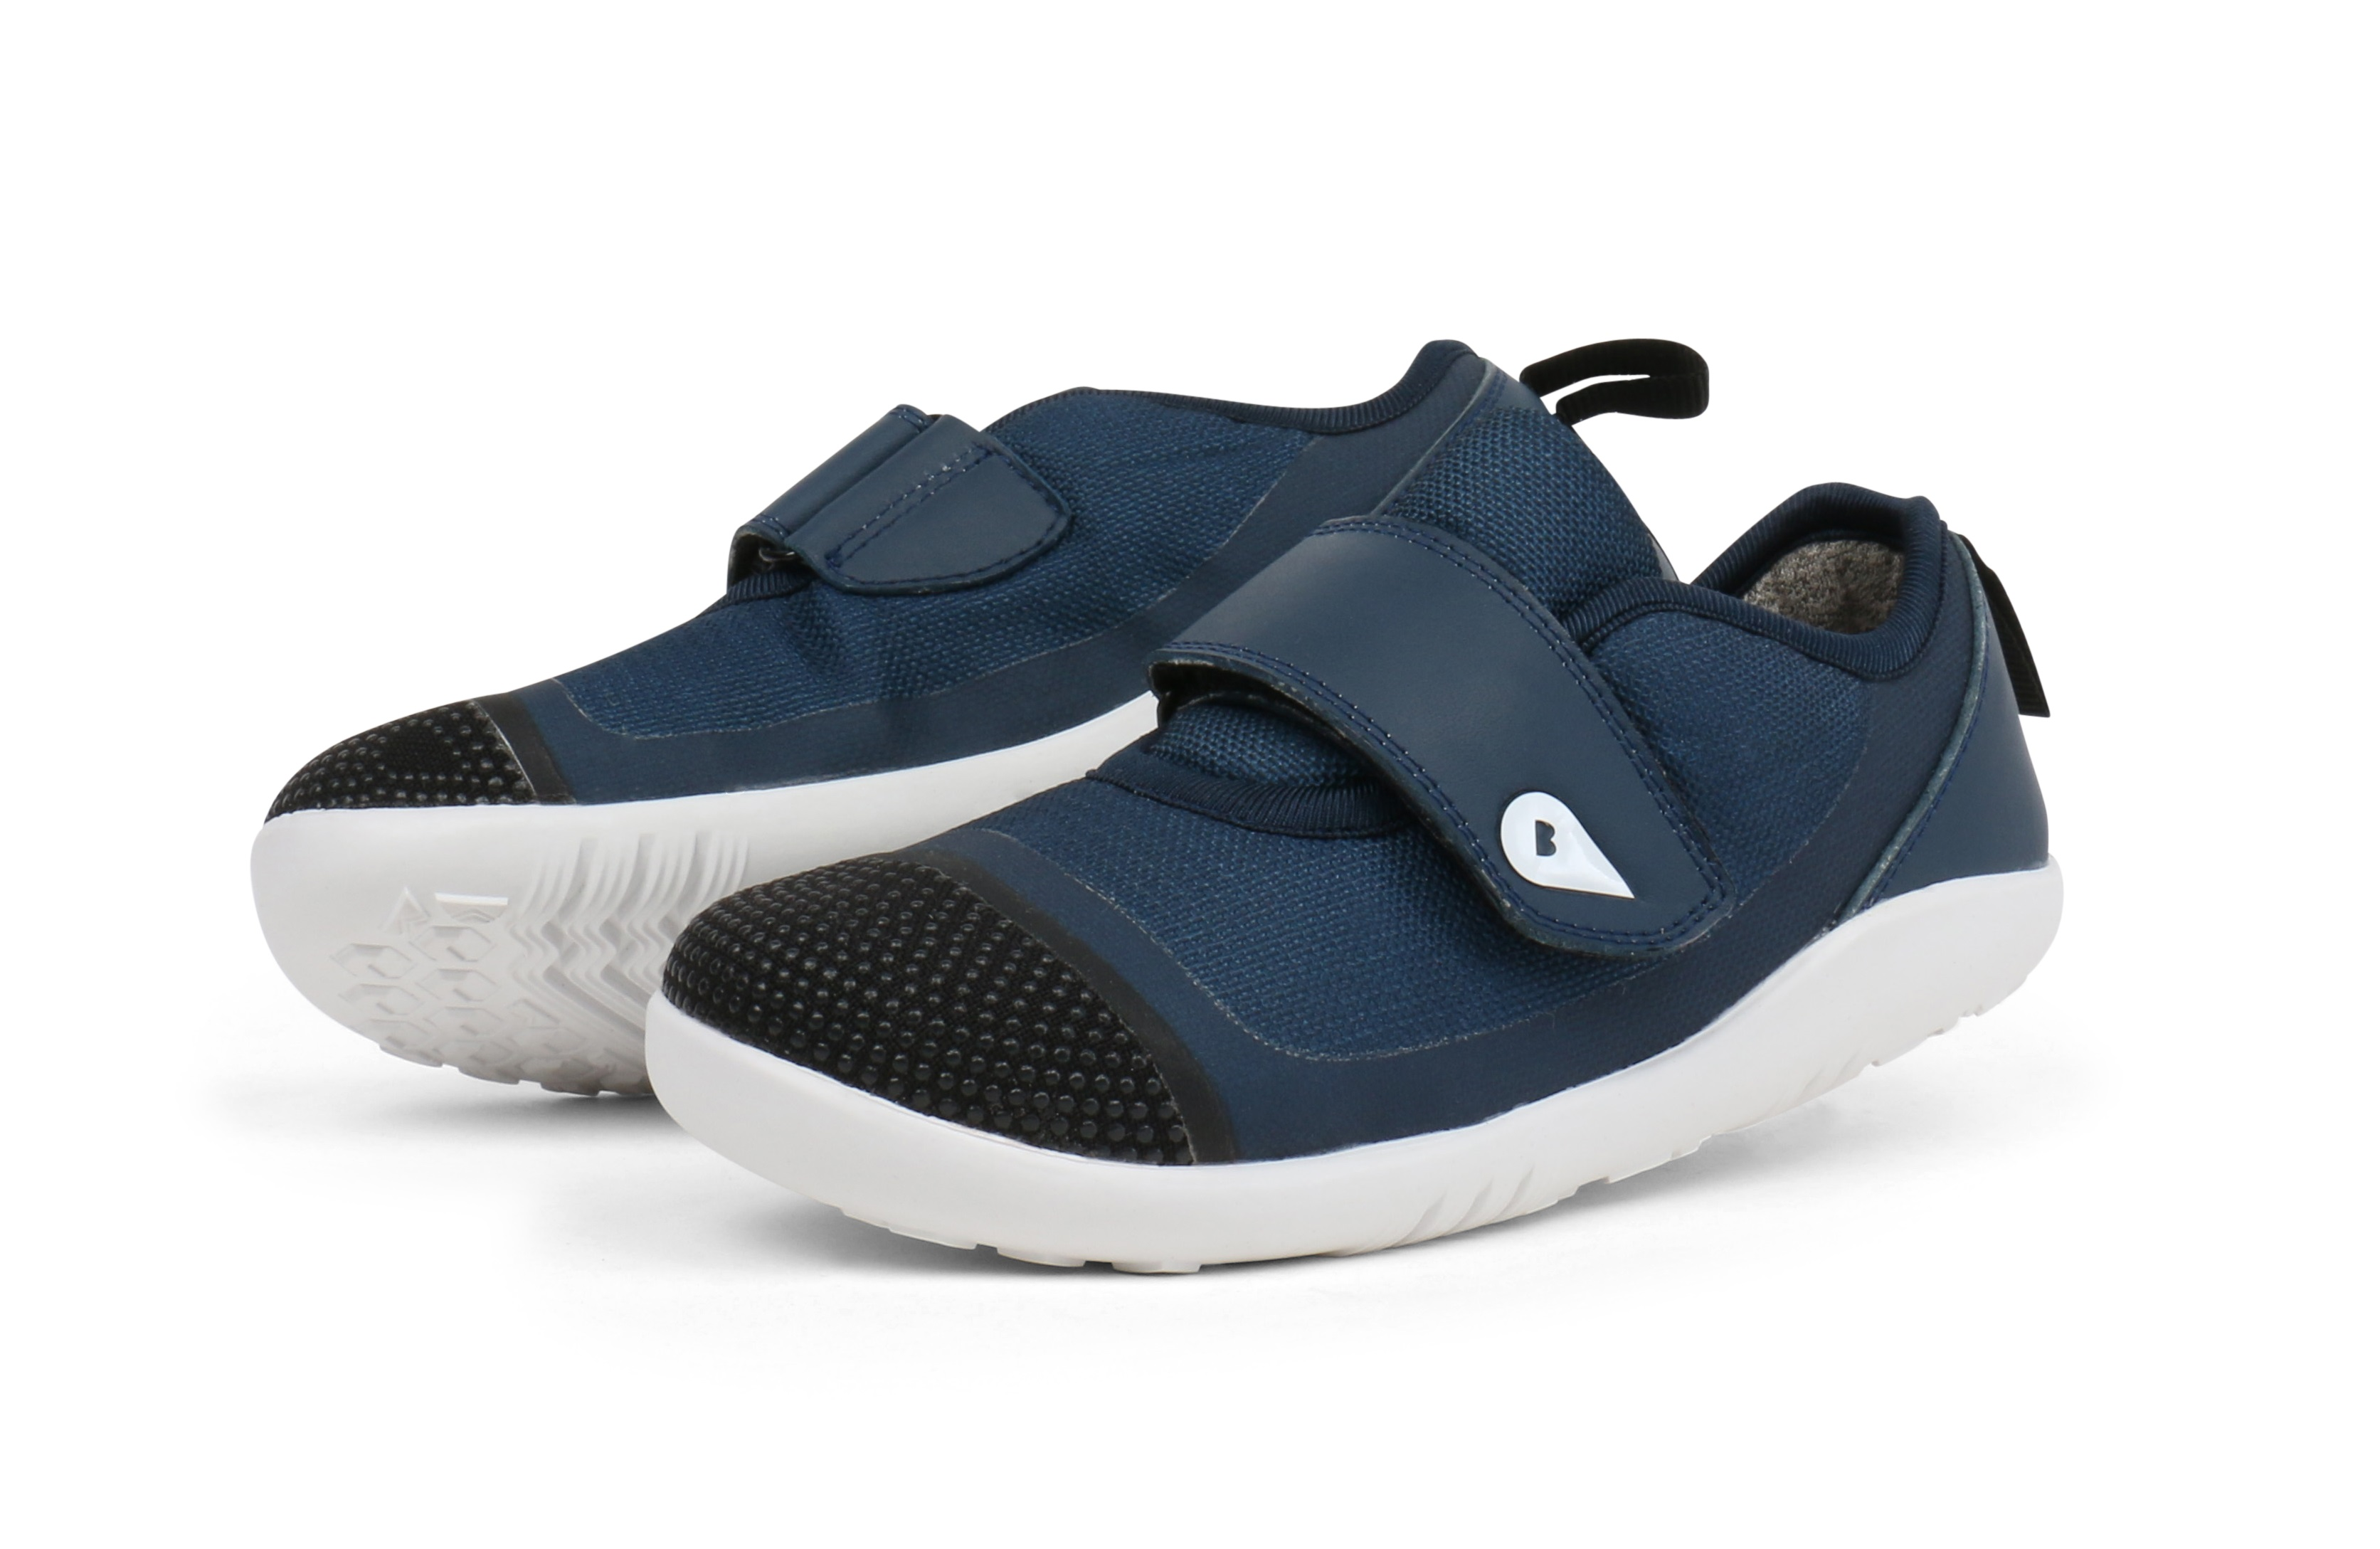 Sizes: 27 - 30 EU - Boys-Casual : NZ's Leading Kids' Shoe